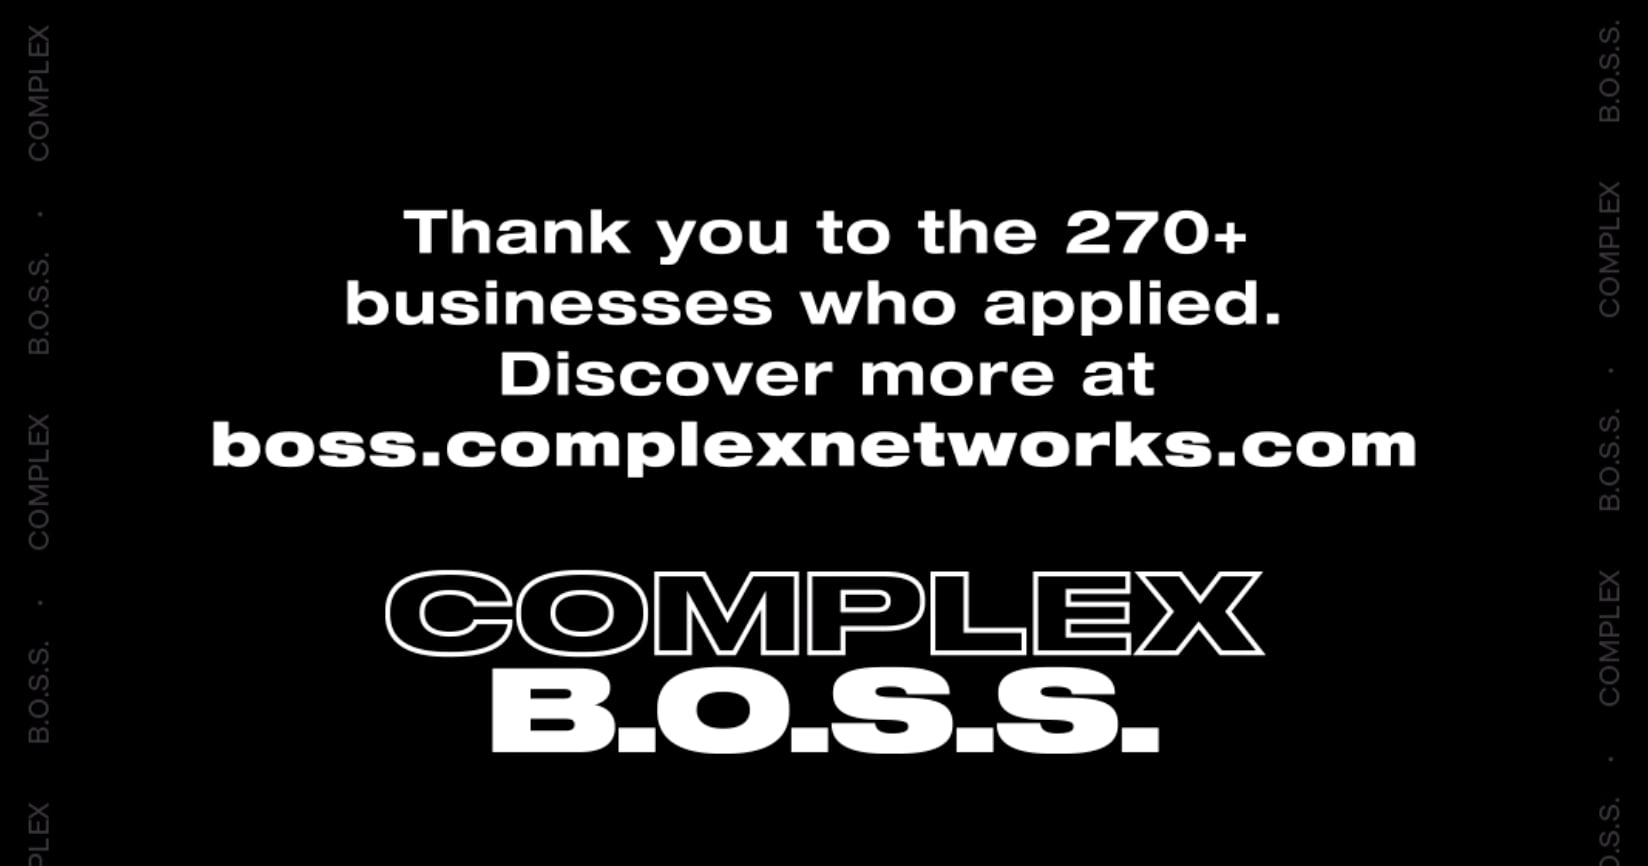 Complex B.O.S.S. Thank You